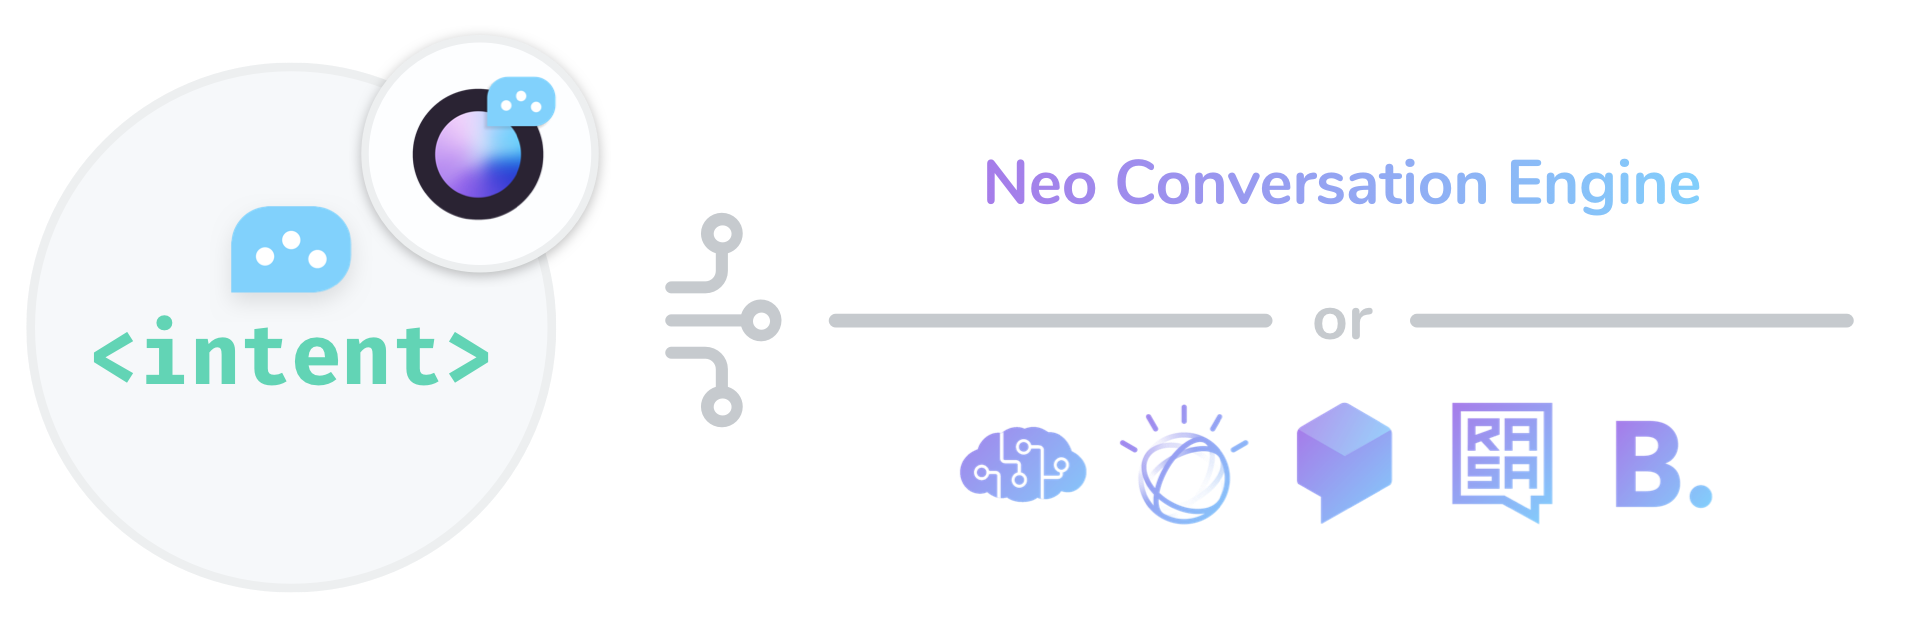 Natural Language Processing mit Neo: Intergrationen